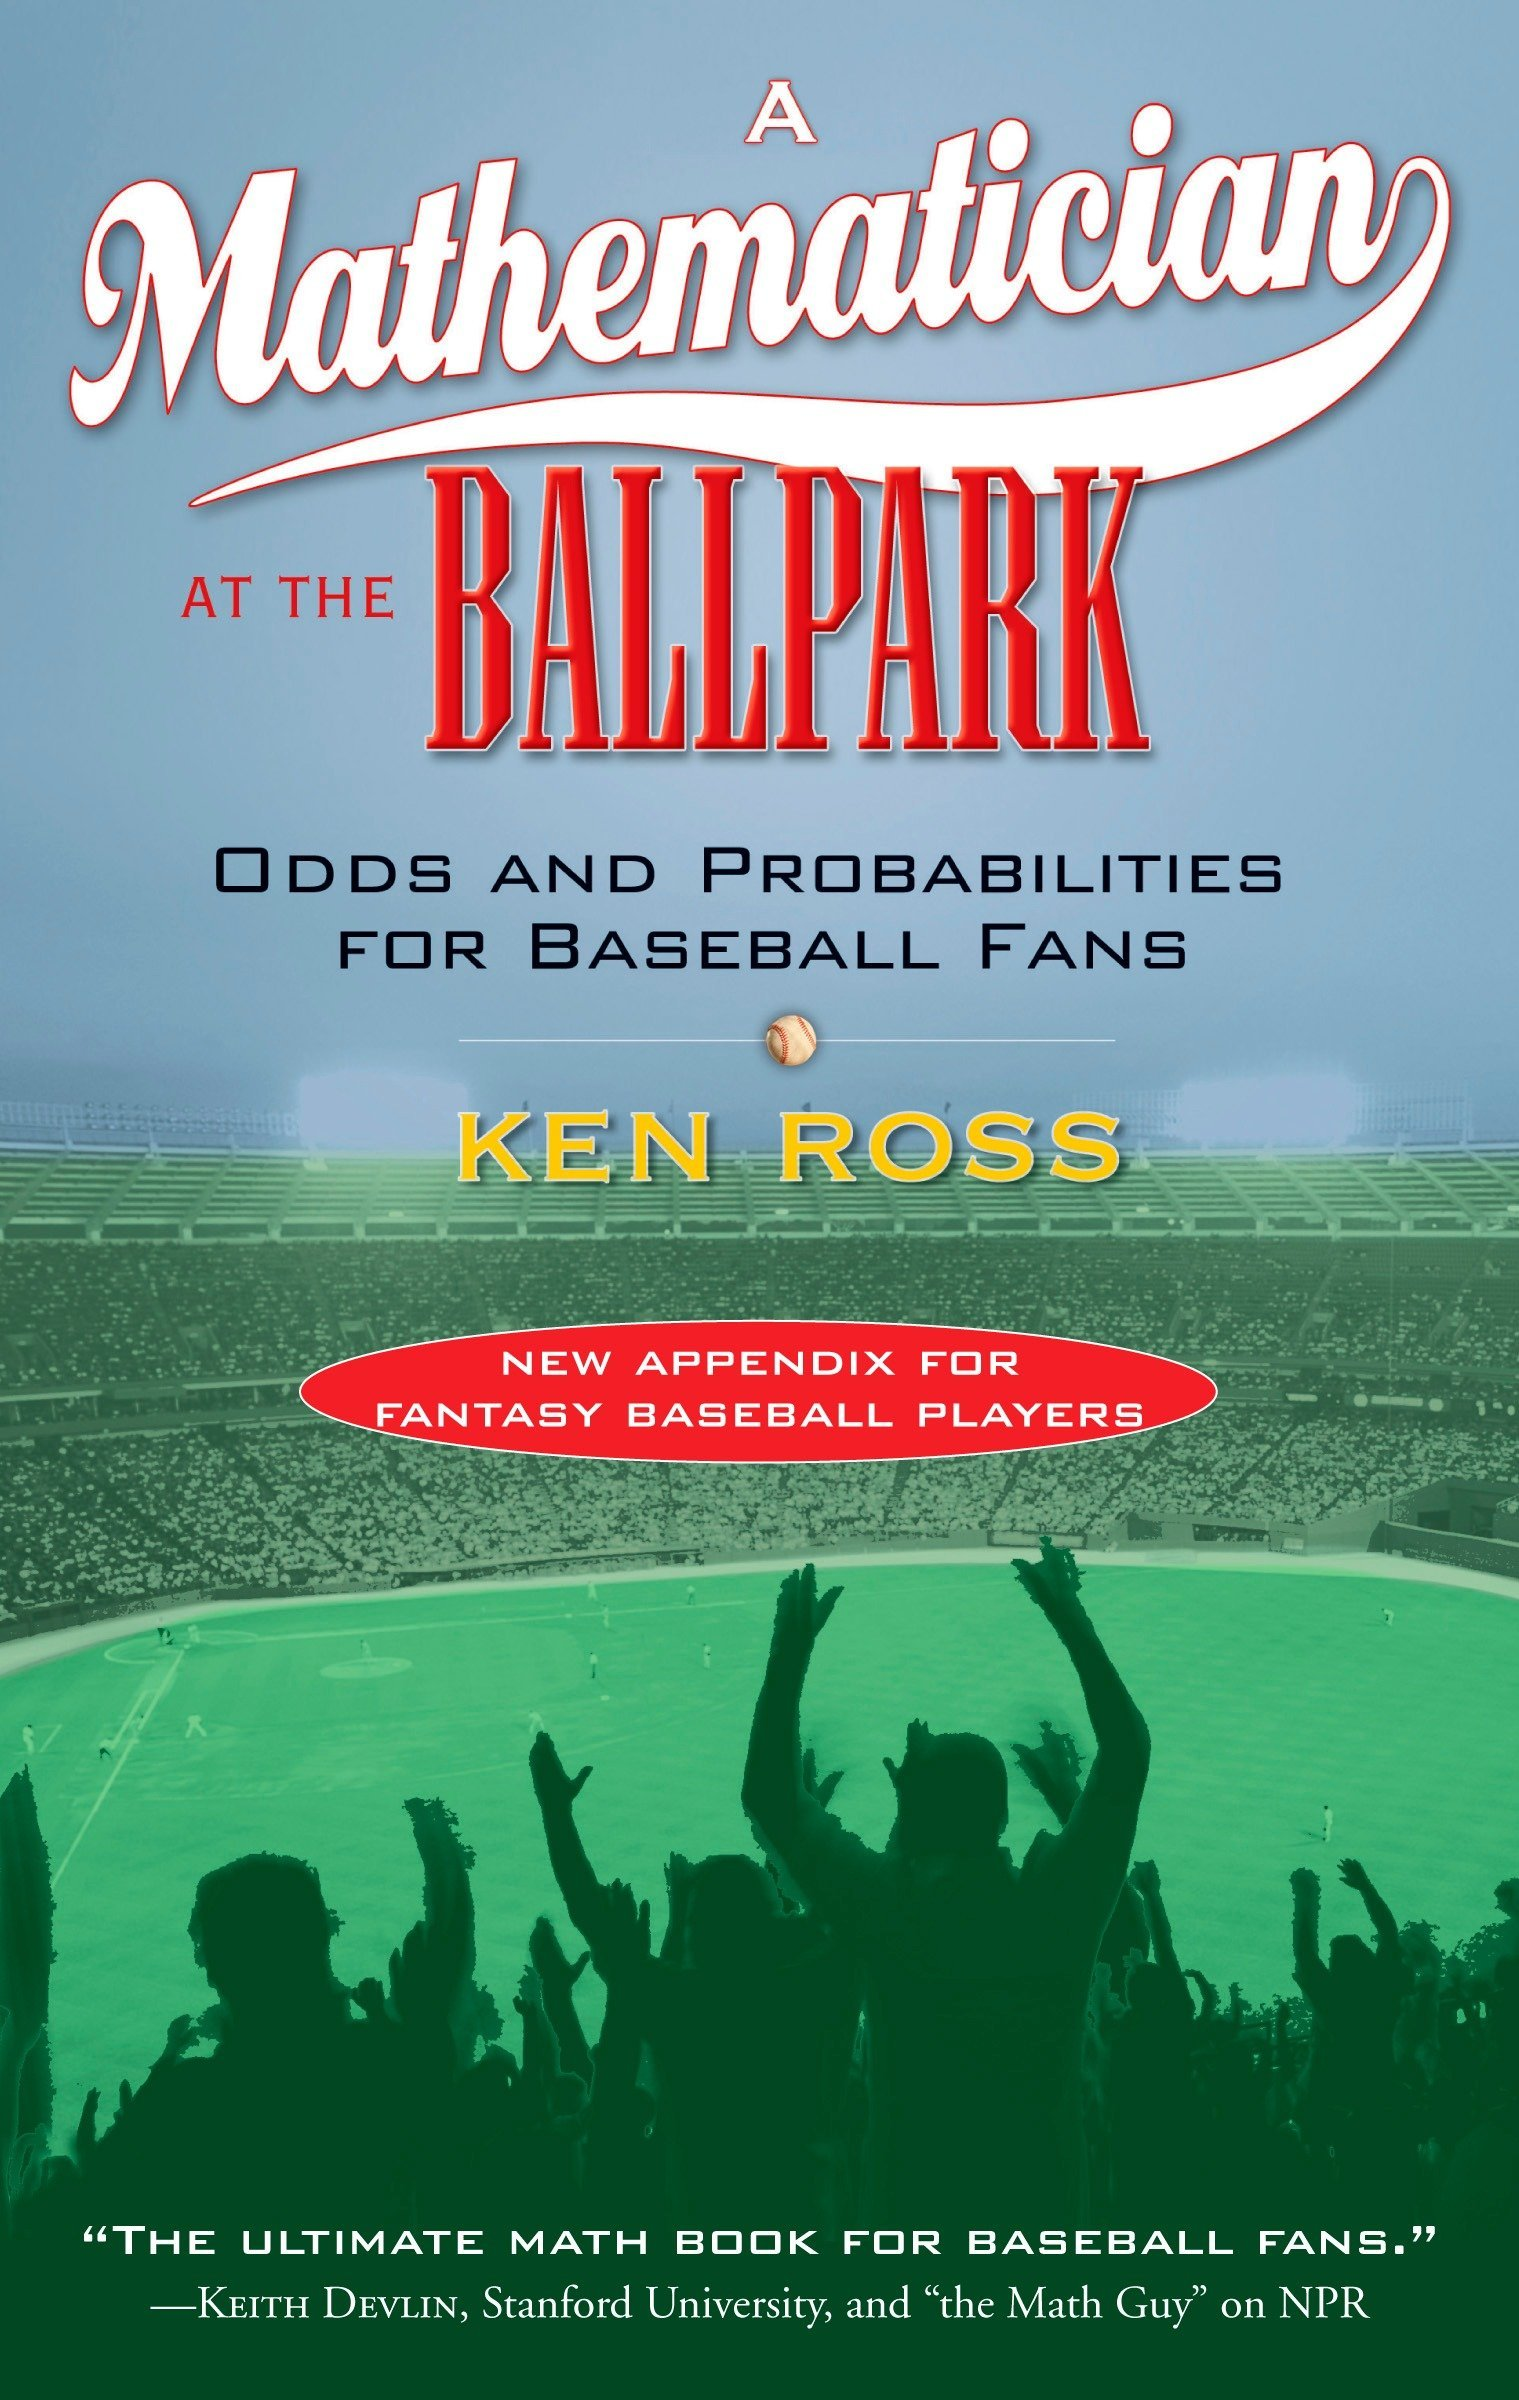 A Mathematician at the Ballpark: Odds and Probabilities for Baseball ...